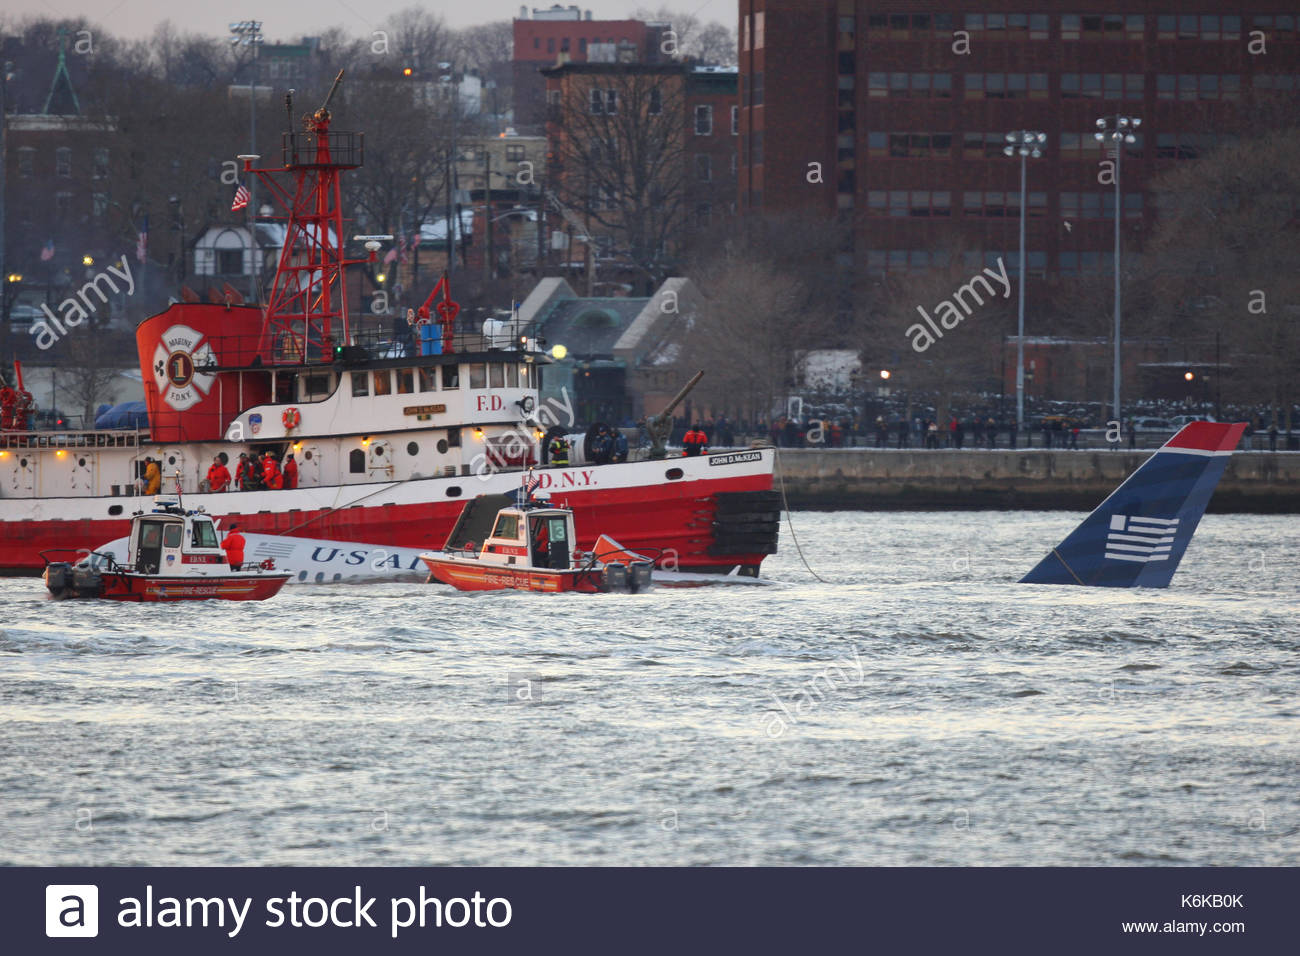 US Airways Flight 1549. US Airways Flight 1549 crashes into NYC's Hudson  River.